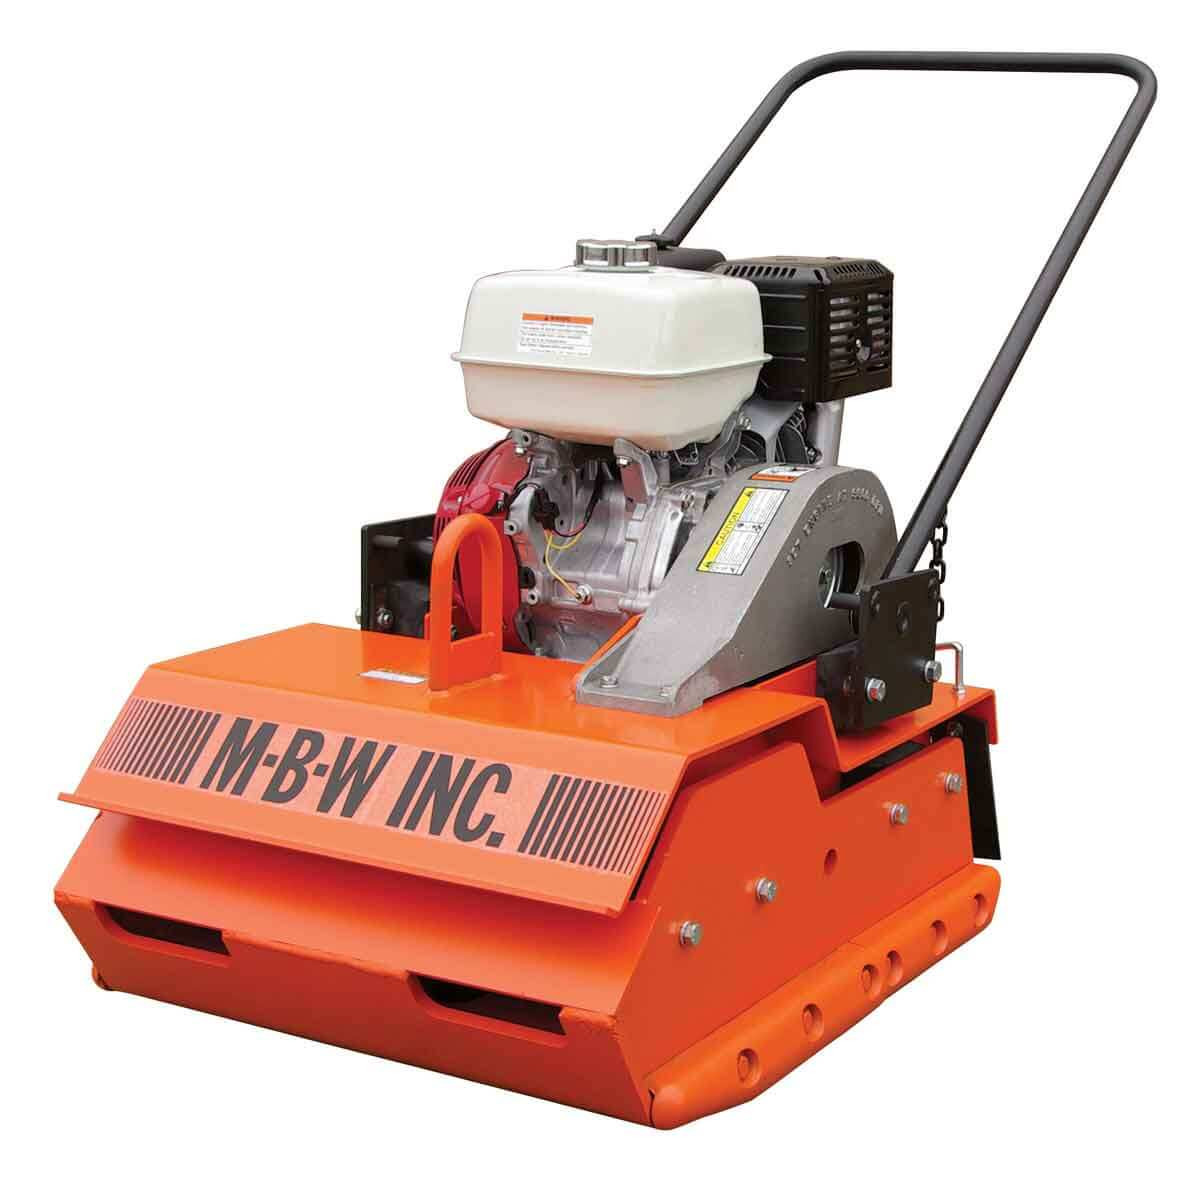 GP7000H MBW Plate Compactor